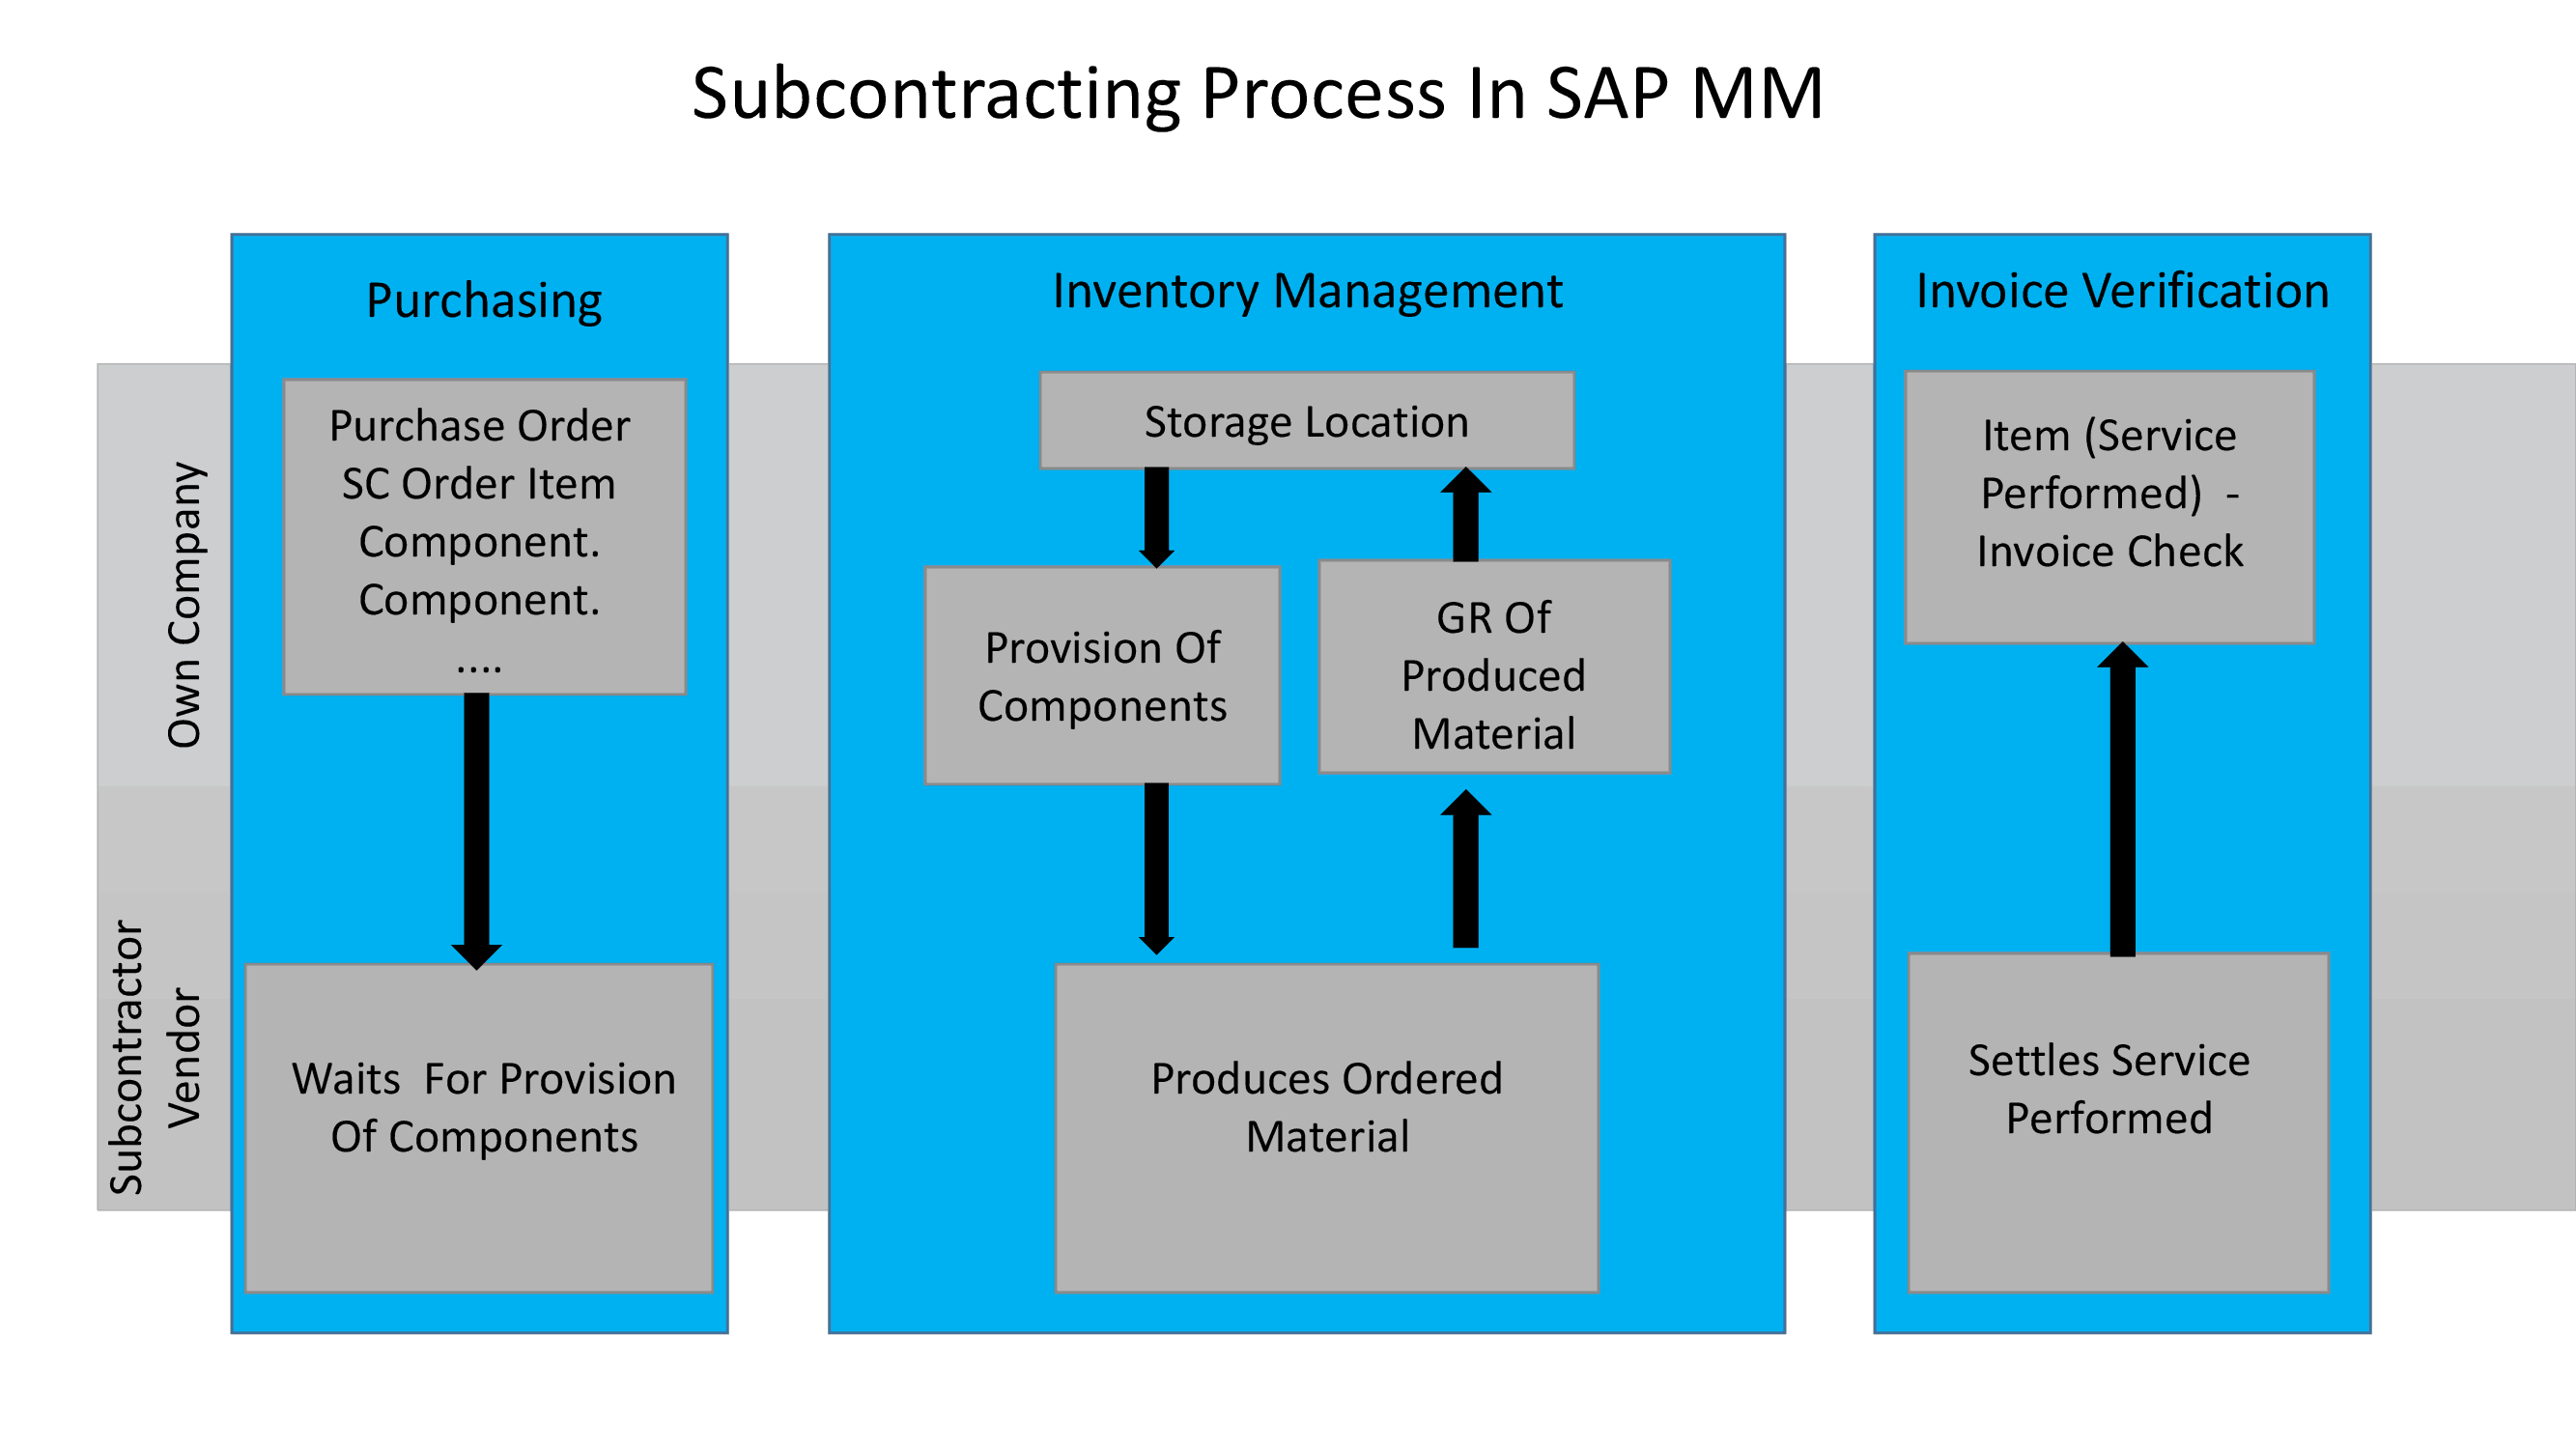 Subcontracting Process In SAP MM - Free SAP MM Tutorial By